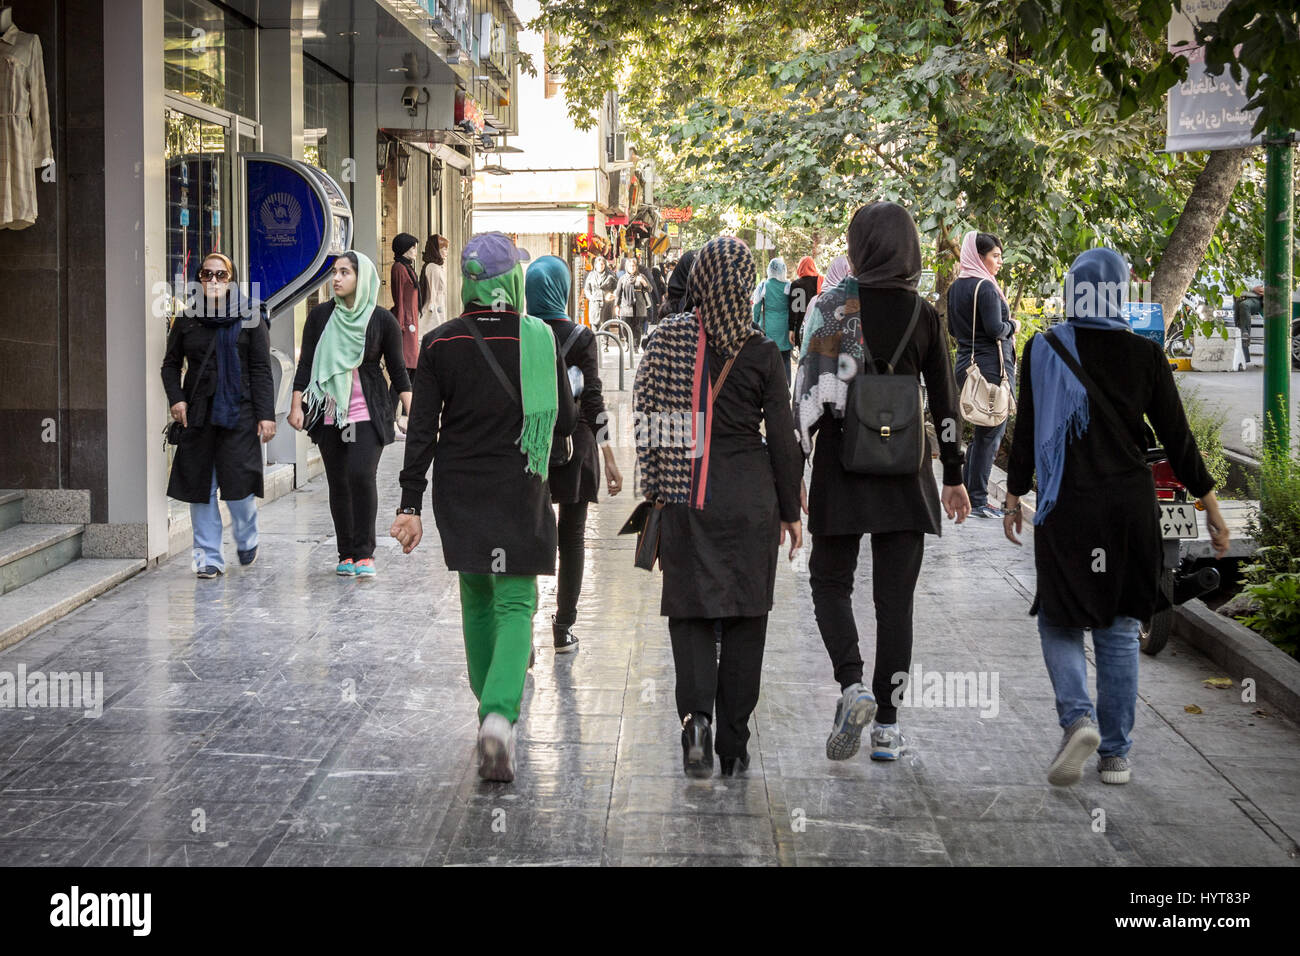 ISFAHAN, IRAN - AUGUST 20, 2016: Women wearing the islamic scarf walking in the streets of Isfahan, Iran  Picture - Stock Image